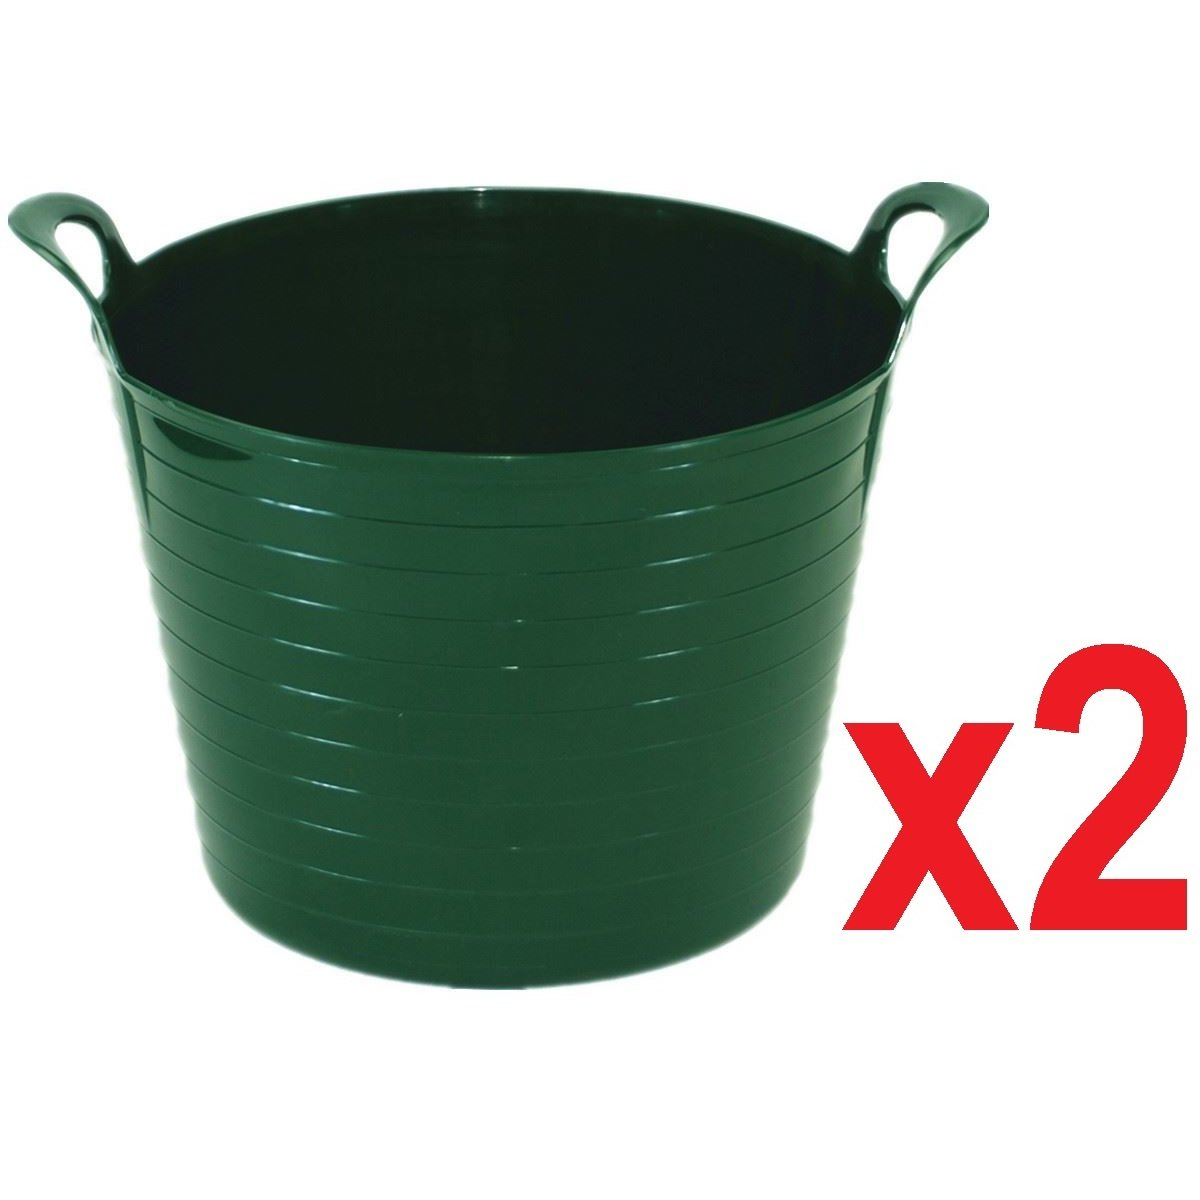 2 x GREEN 42 Litre Large Flexi Tub Garden Home Flexible Colour Rubber Storage Container Bucket Polyethylene Flex Tub - MADE IN U.K. UK